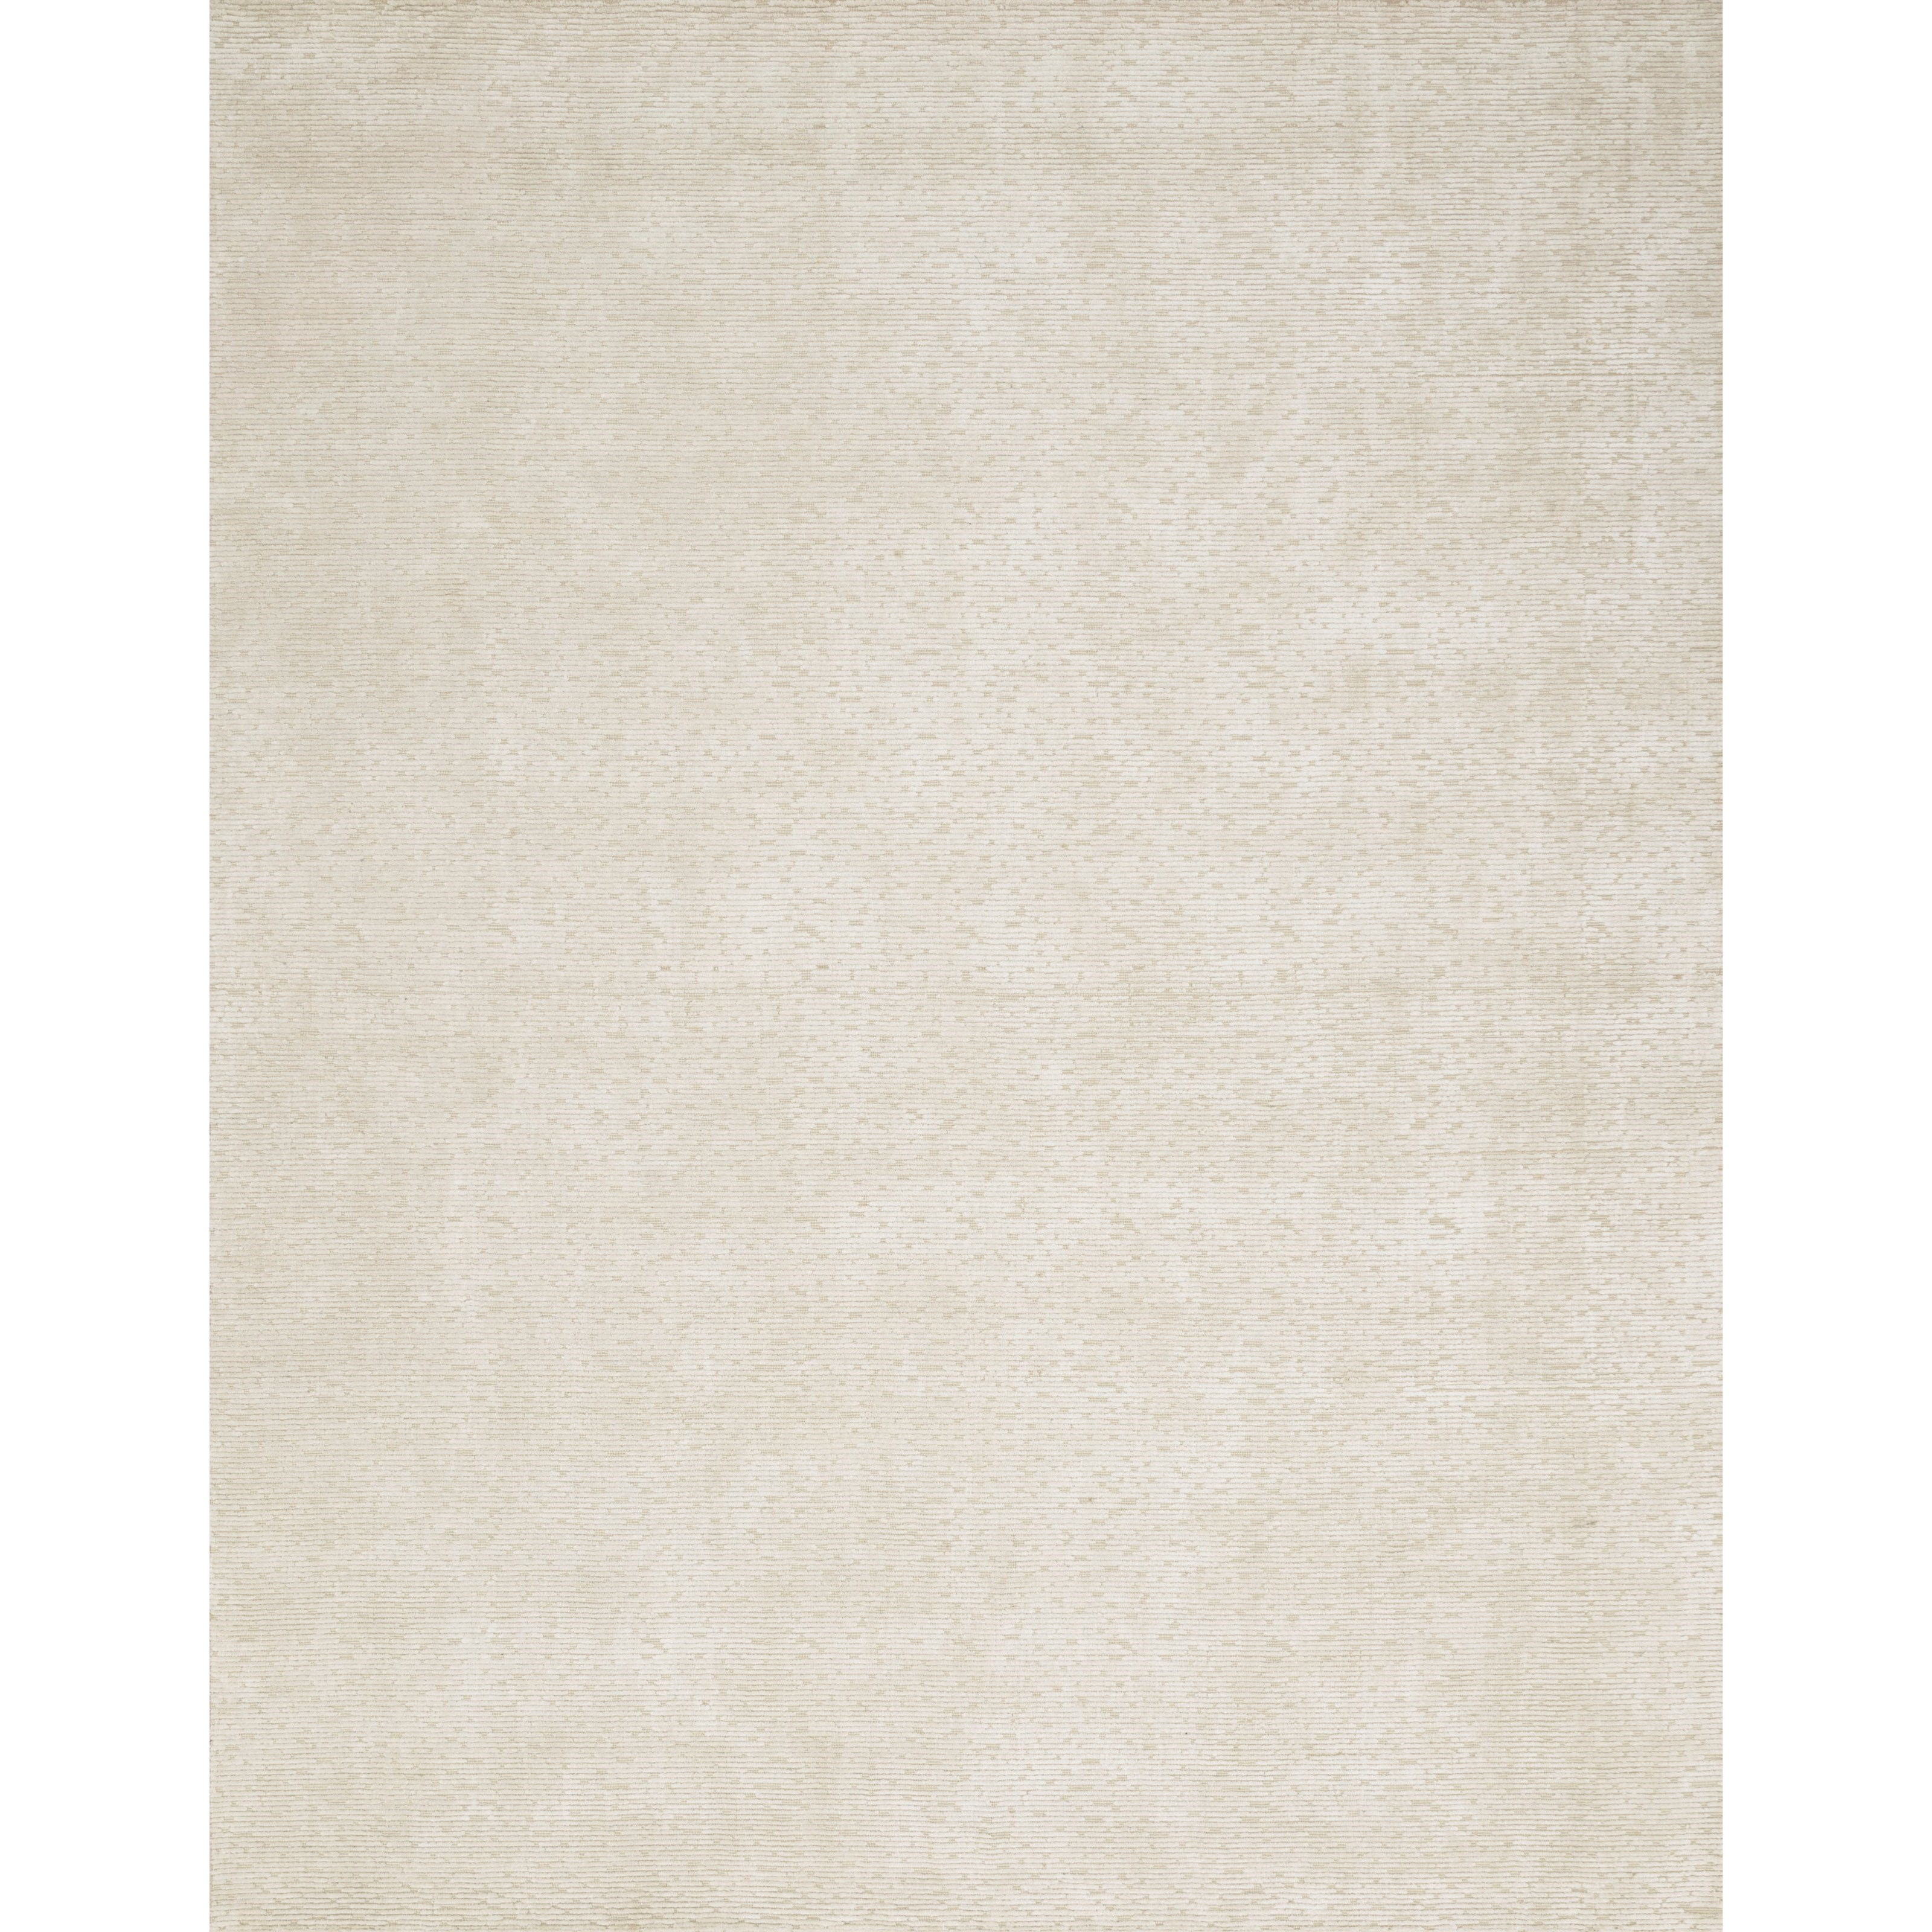 """Ollie 4'0"""" x 6'0"""" Ivory Rug by Loloi Rugs at Belfort Furniture"""